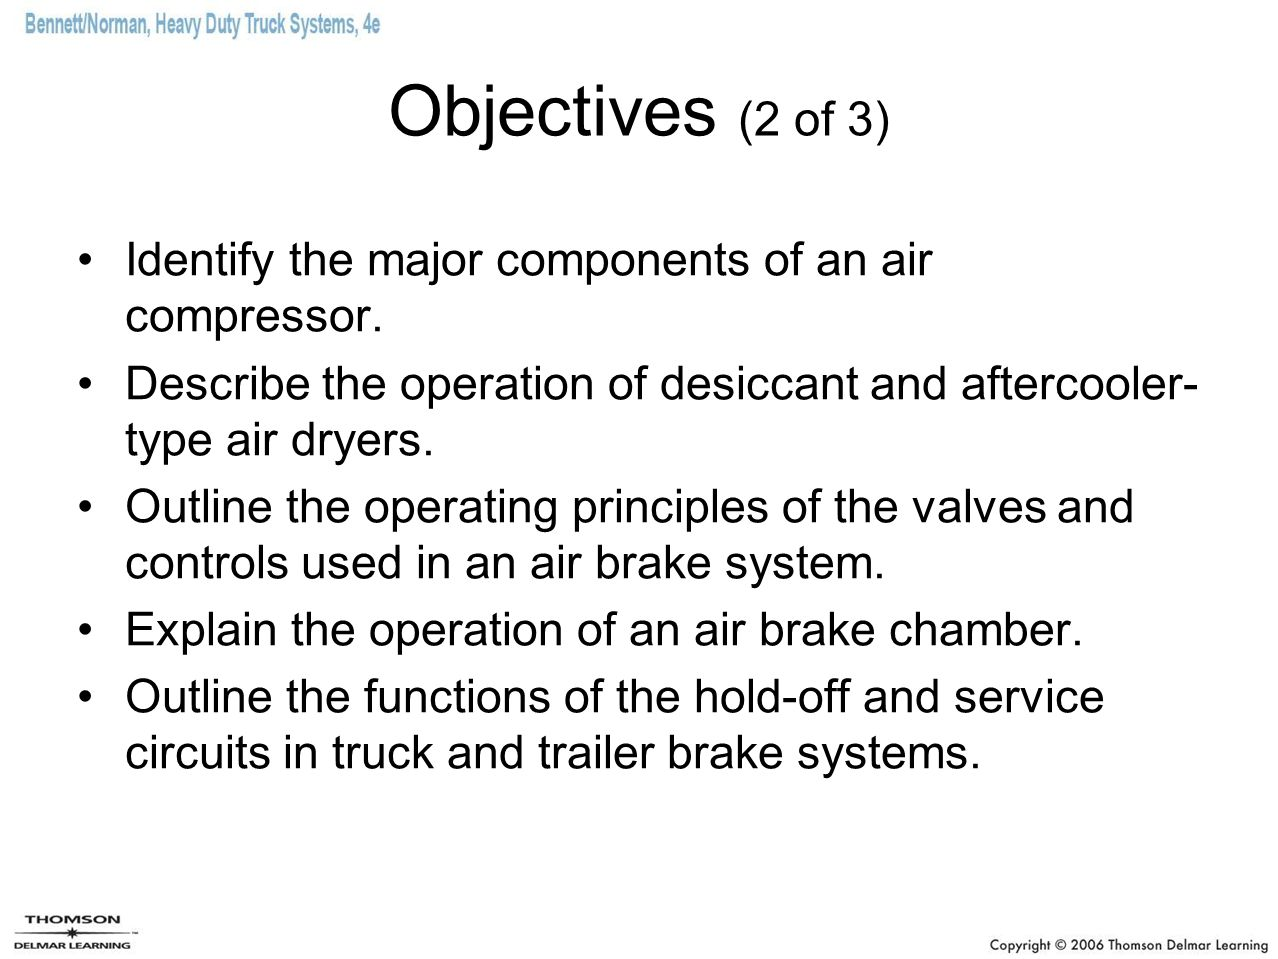 Objectives (2 of 3) Identify the major components of an air compressor. Describe the operation of desiccant and aftercooler-type air dryers.